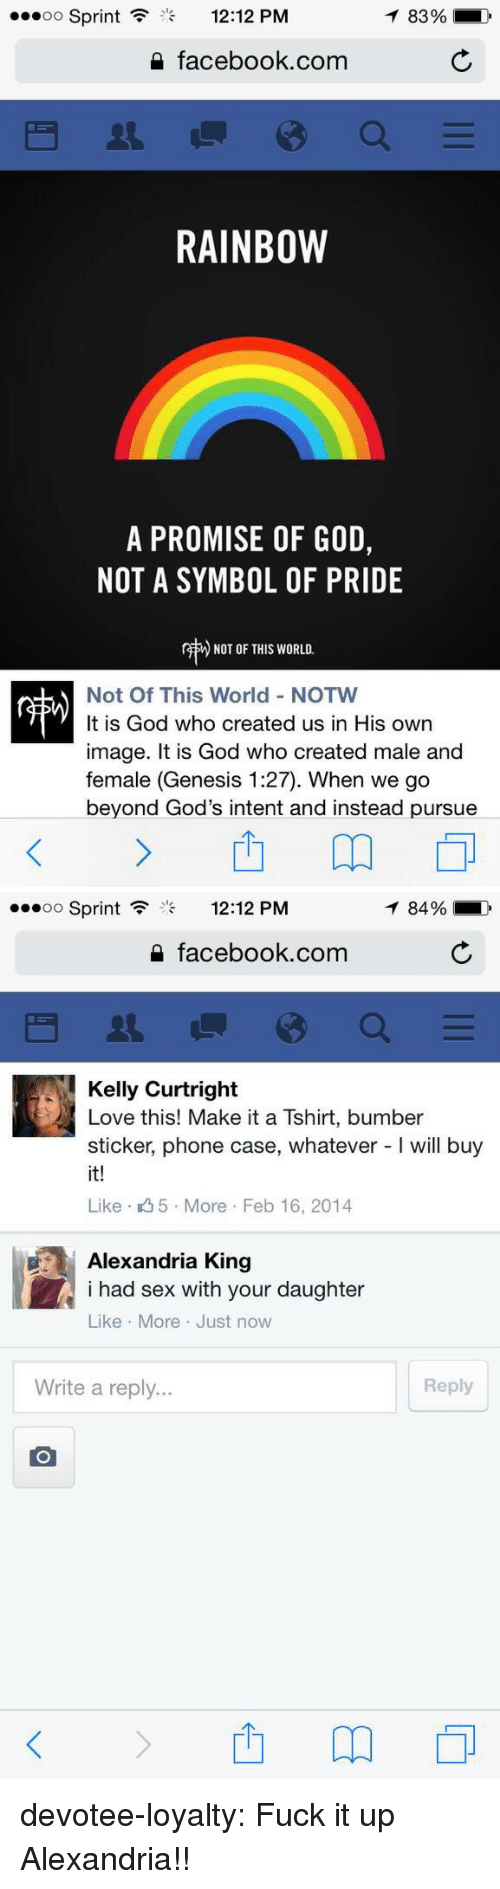 a promise: Sprint  12:12 PM  83%  2 facebook.com  RAINBOW  A PROMISE OF GOD,  NOT A SYMBOL OF PRIDE  r  ) NOT OF THIS WORLD.  Not Of This World - NOTW  It is God who created us in His own  image. It is God who created male and  female (Genesis 1:27). When we go  beyond God's intent and instead pursue   oo Sprint  12:12 PM  84%  2 facebook.com  Kelly Curtright  Love this! Make it a Tshirt, bumber  sticker, phone case, whatever - will buy  it!  Like 5 More Feb 16, 2014  Alexandria King  i had sex with your daughter  Like More Just now  Write a reply...  Reply devotee-loyalty: Fuck it up Alexandria!!